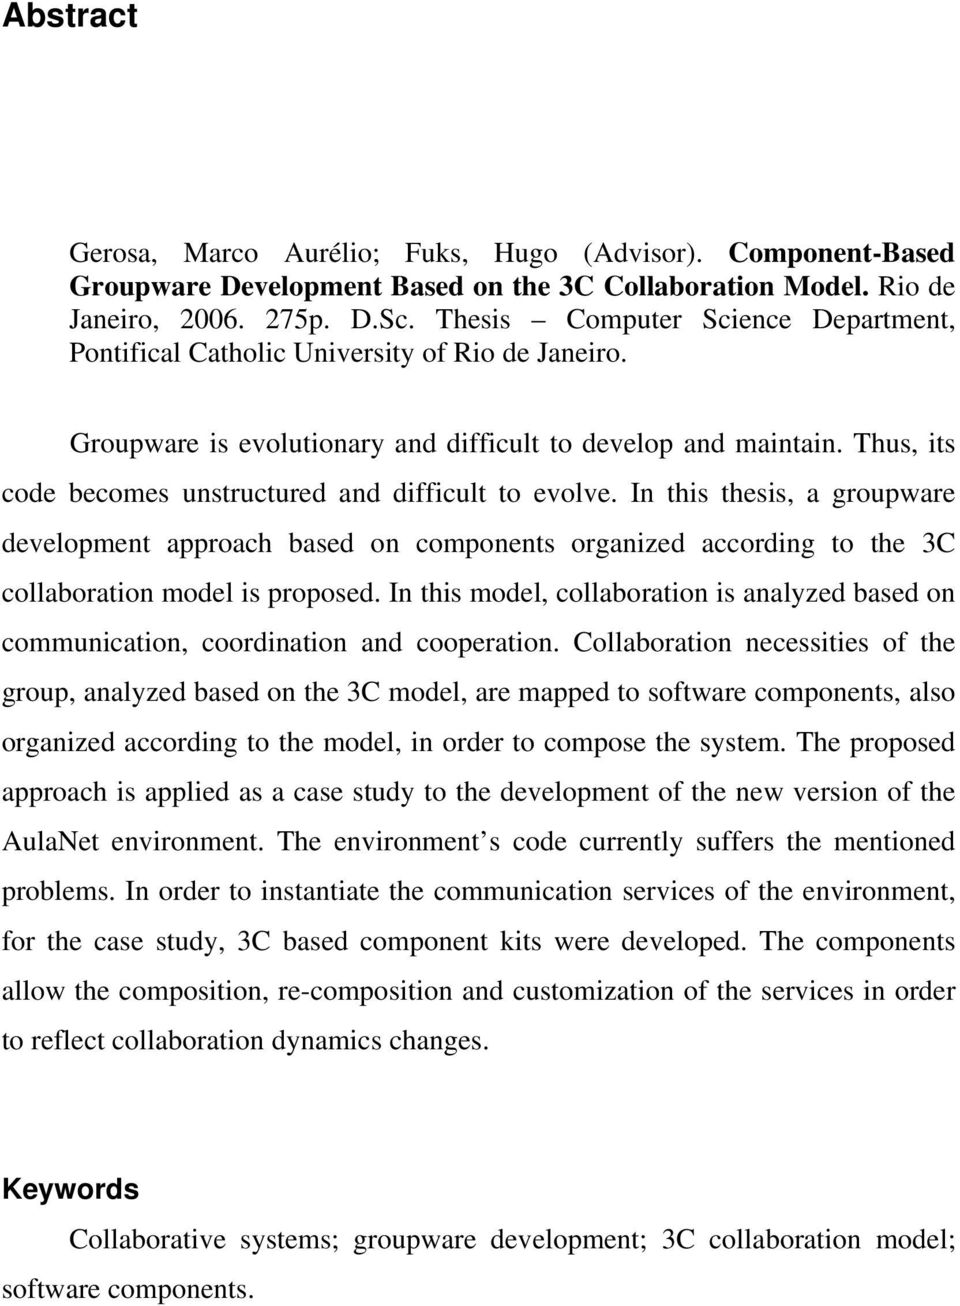 Thus, its code becomes unstructured and difficult to evolve. In this thesis, a groupware development approach based on components organized according to the 3C collaboration model is proposed.